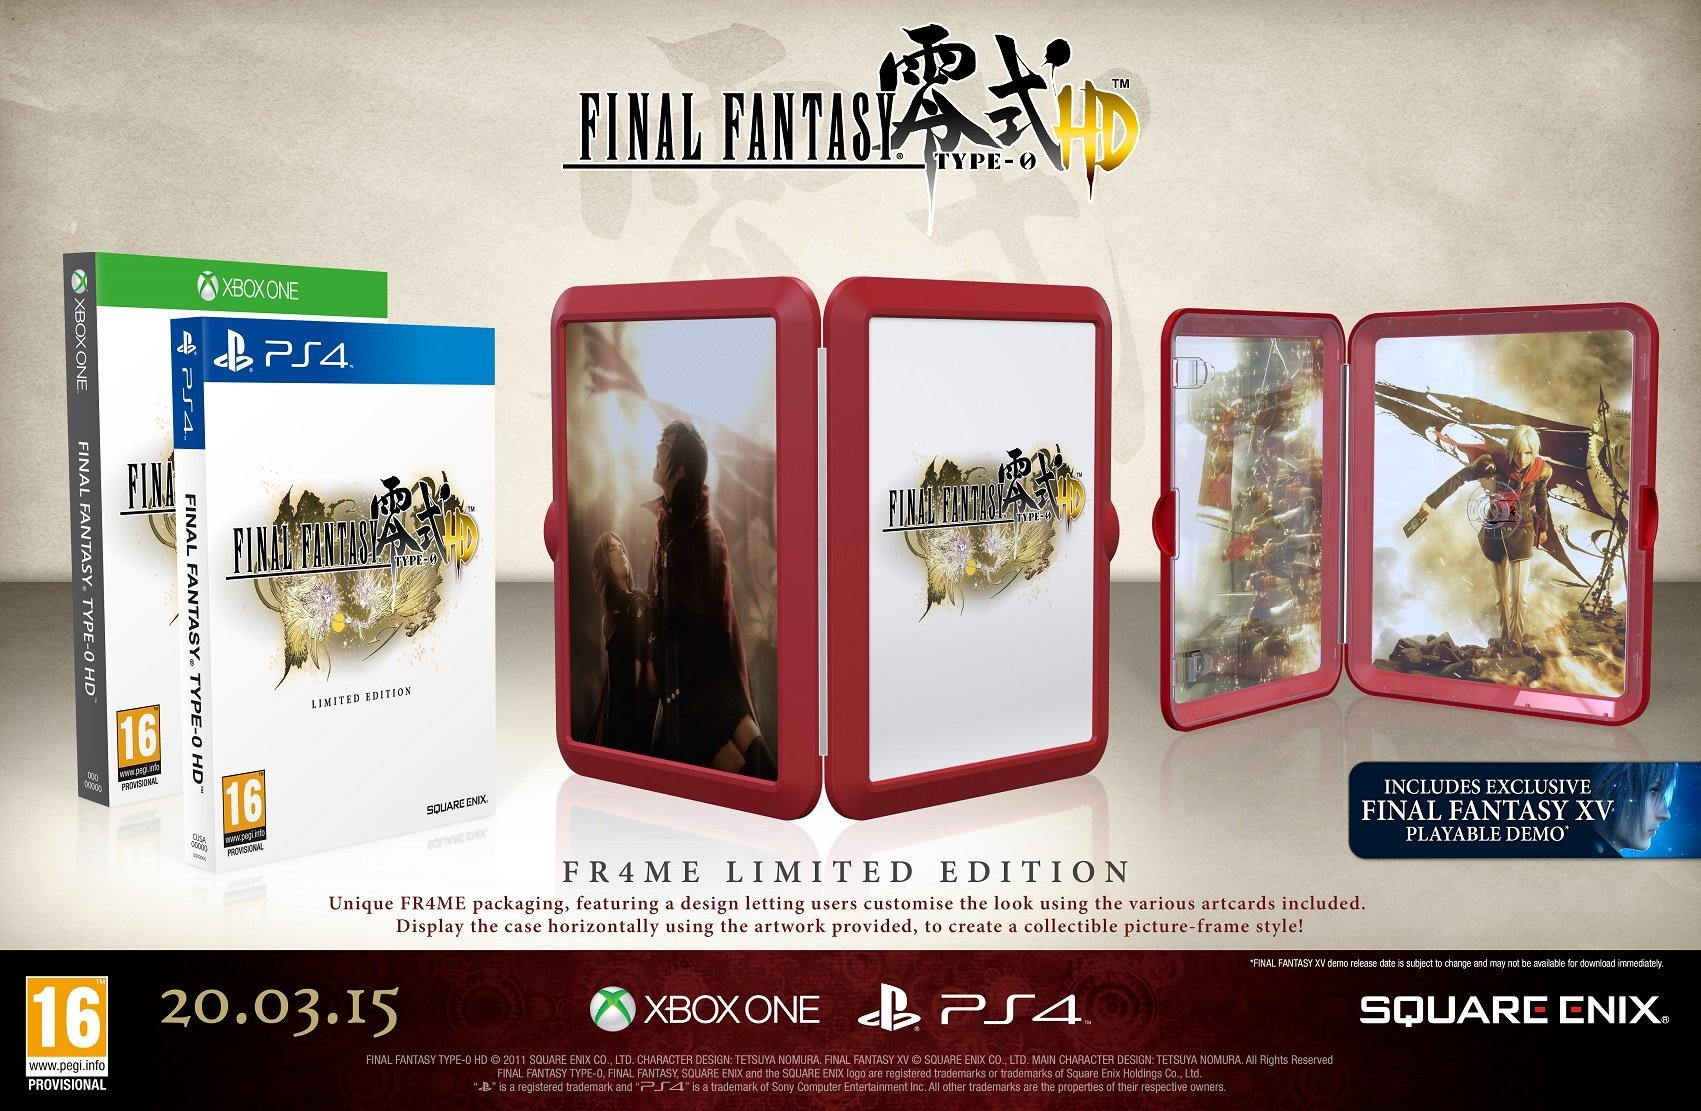 Final-Fantasy-Type-0-fr4me-limited-edition 110115